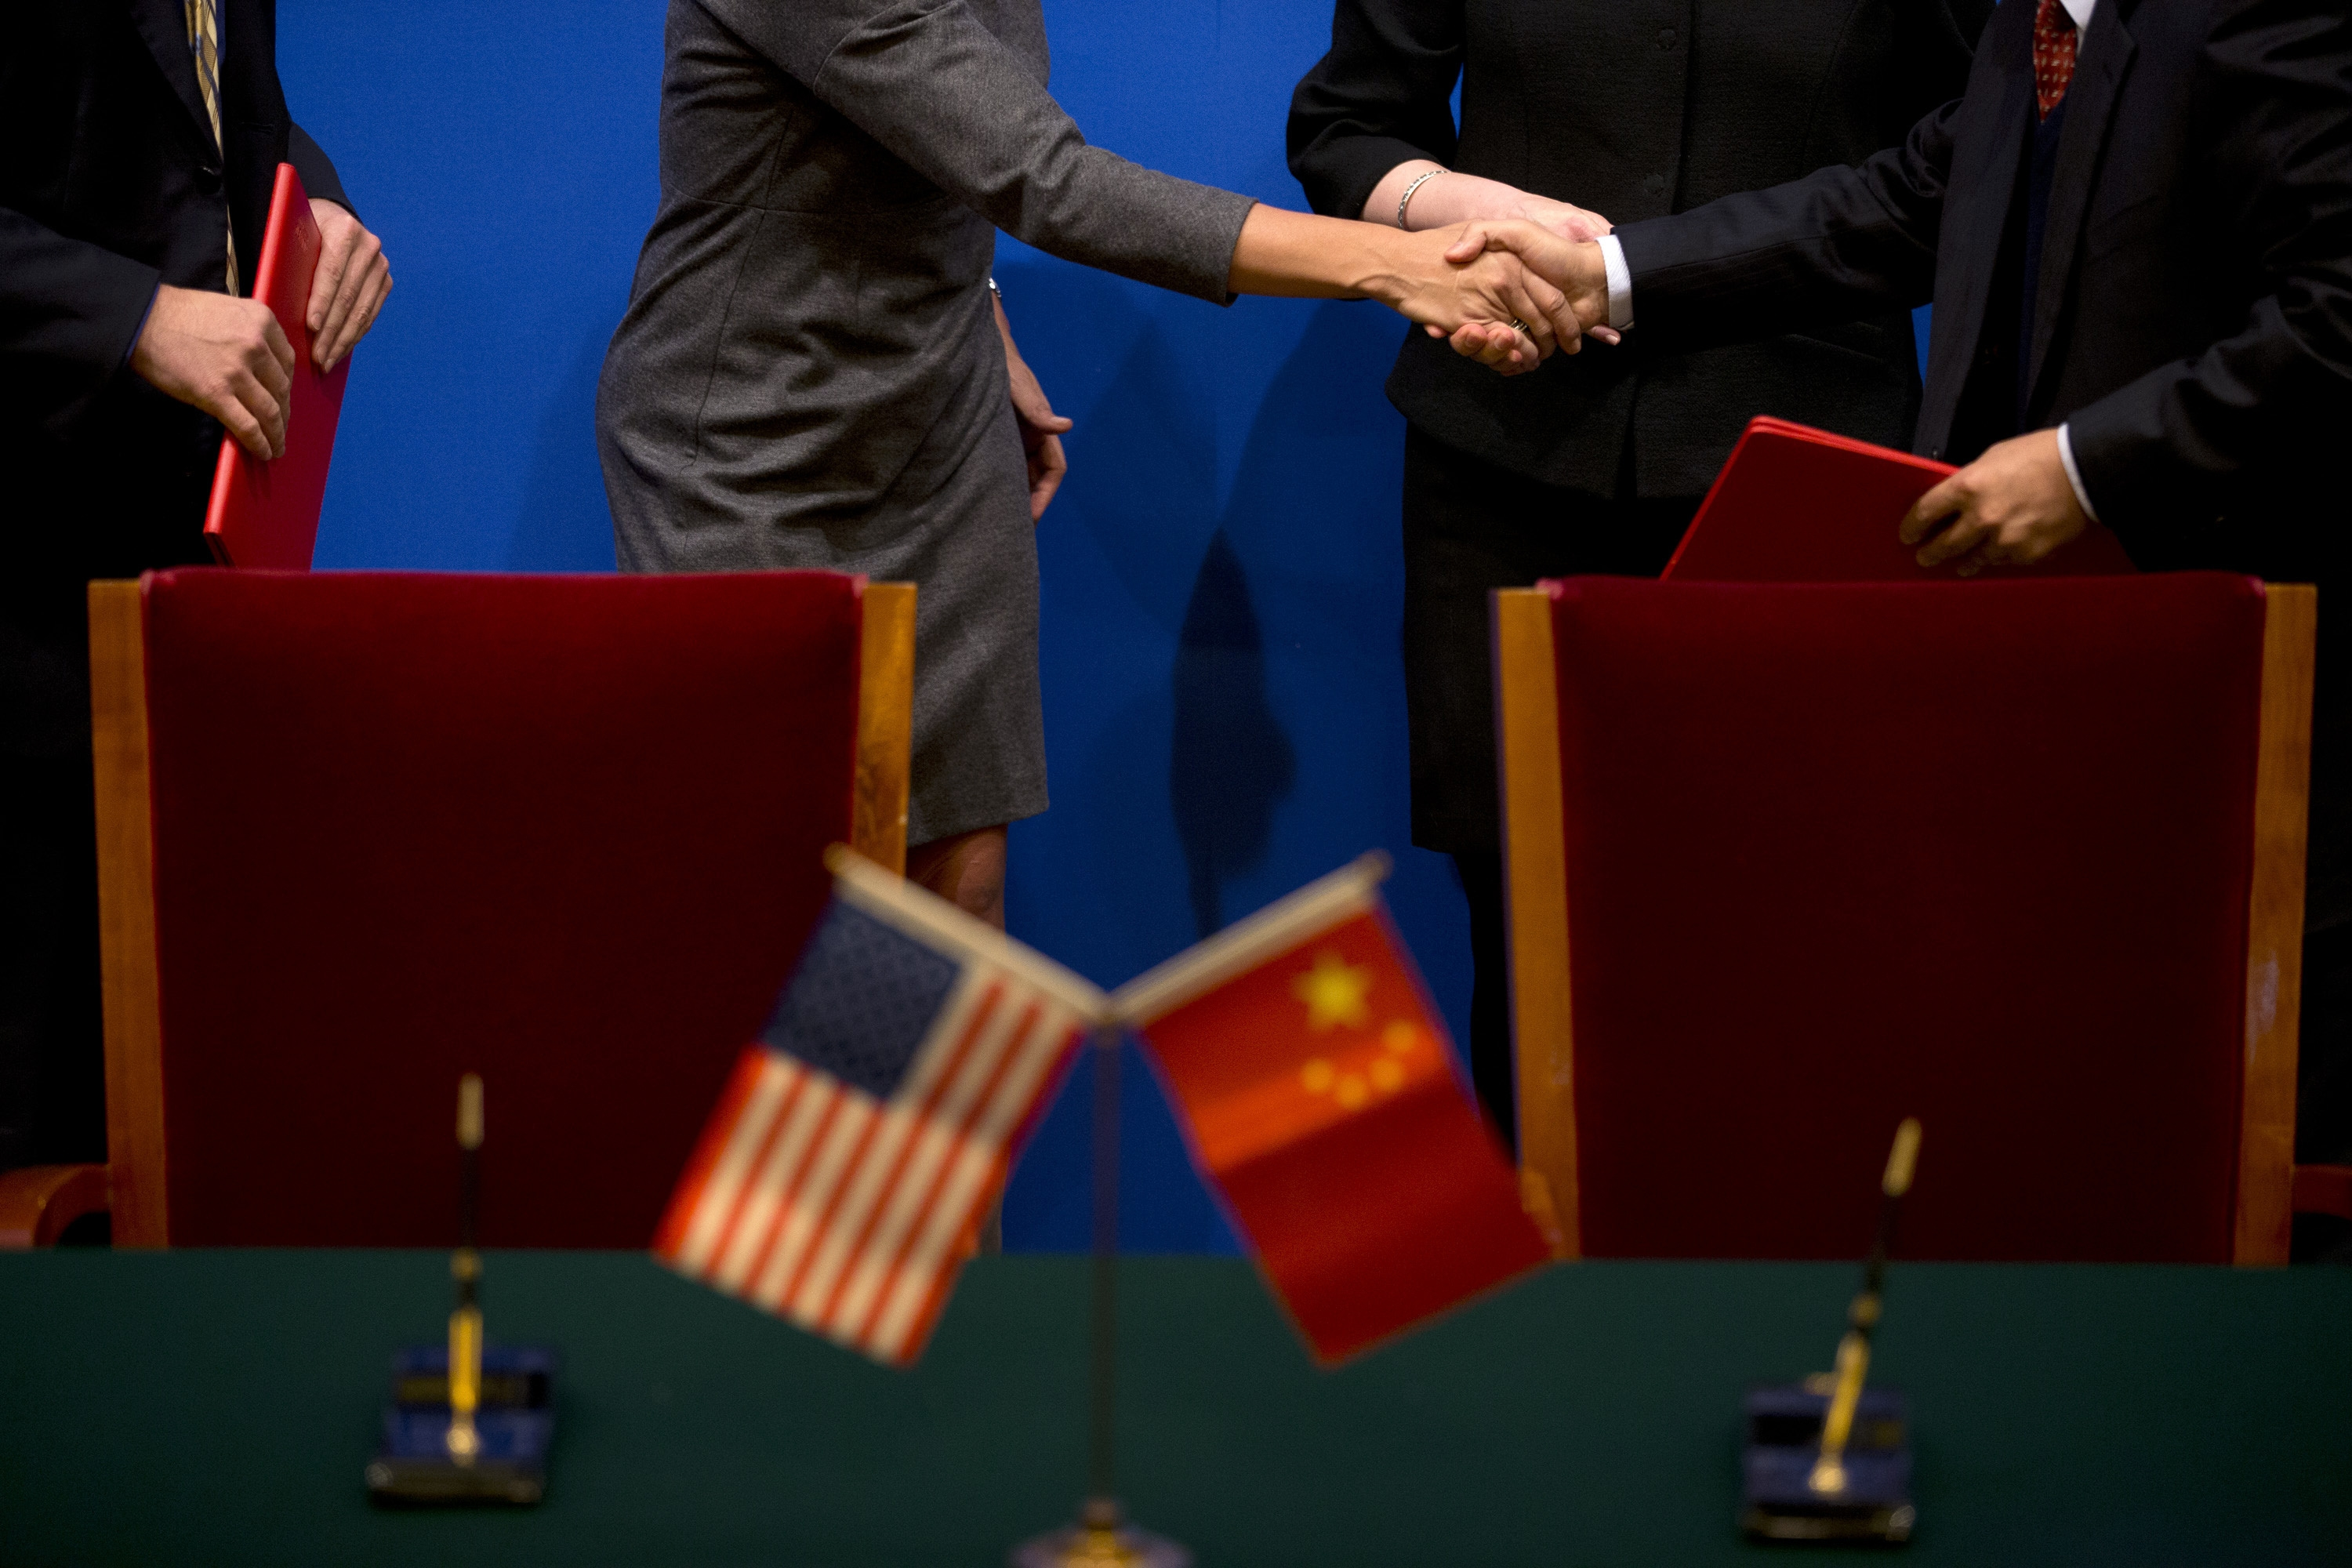 U.S. Secretary of Commerce Penny Pritzker, second from left, shakes hands with a Chinese company executive after a cooperative agreement was signed between the company and an American company at the 24th China-U.S. Joint Commission on Commerce and Trade held at Diaoyutai State Guesthouse in Beijing, Friday, Dec. 20, 2013. (AP Photo/Alexander F. Yuan, Pool)